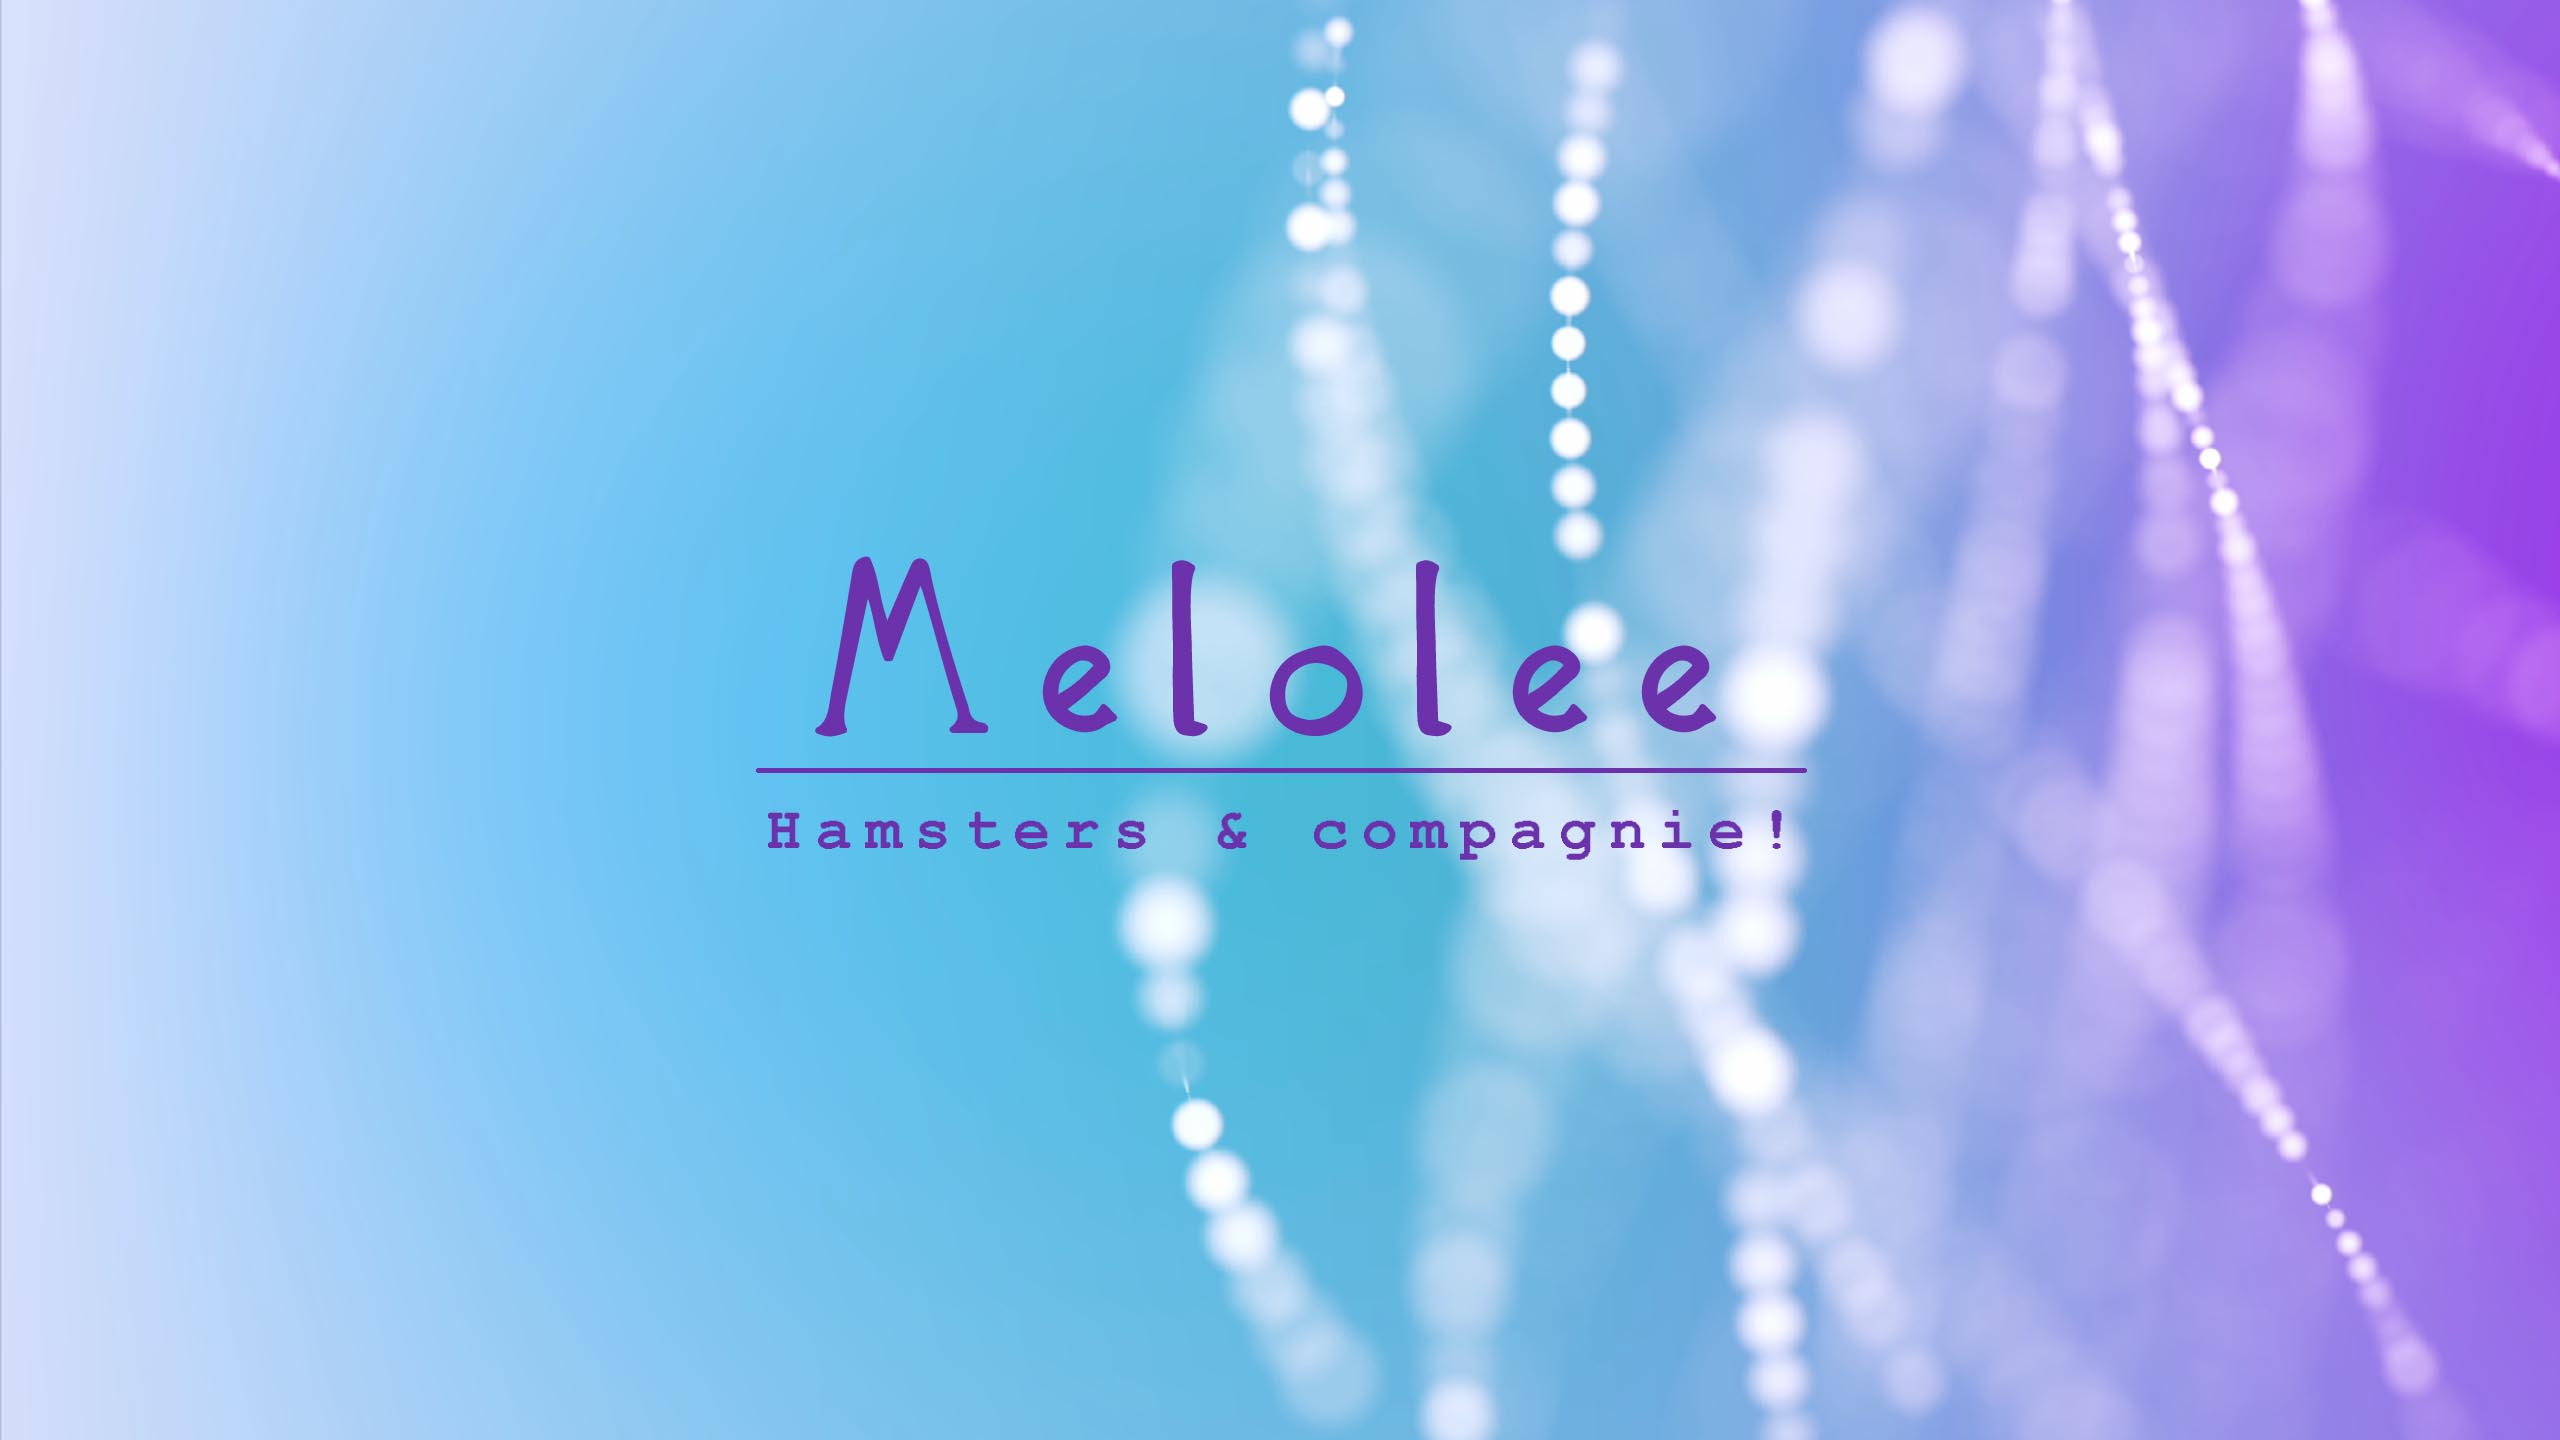 Melolee – Hamsters & Compagnie! (YouTube)